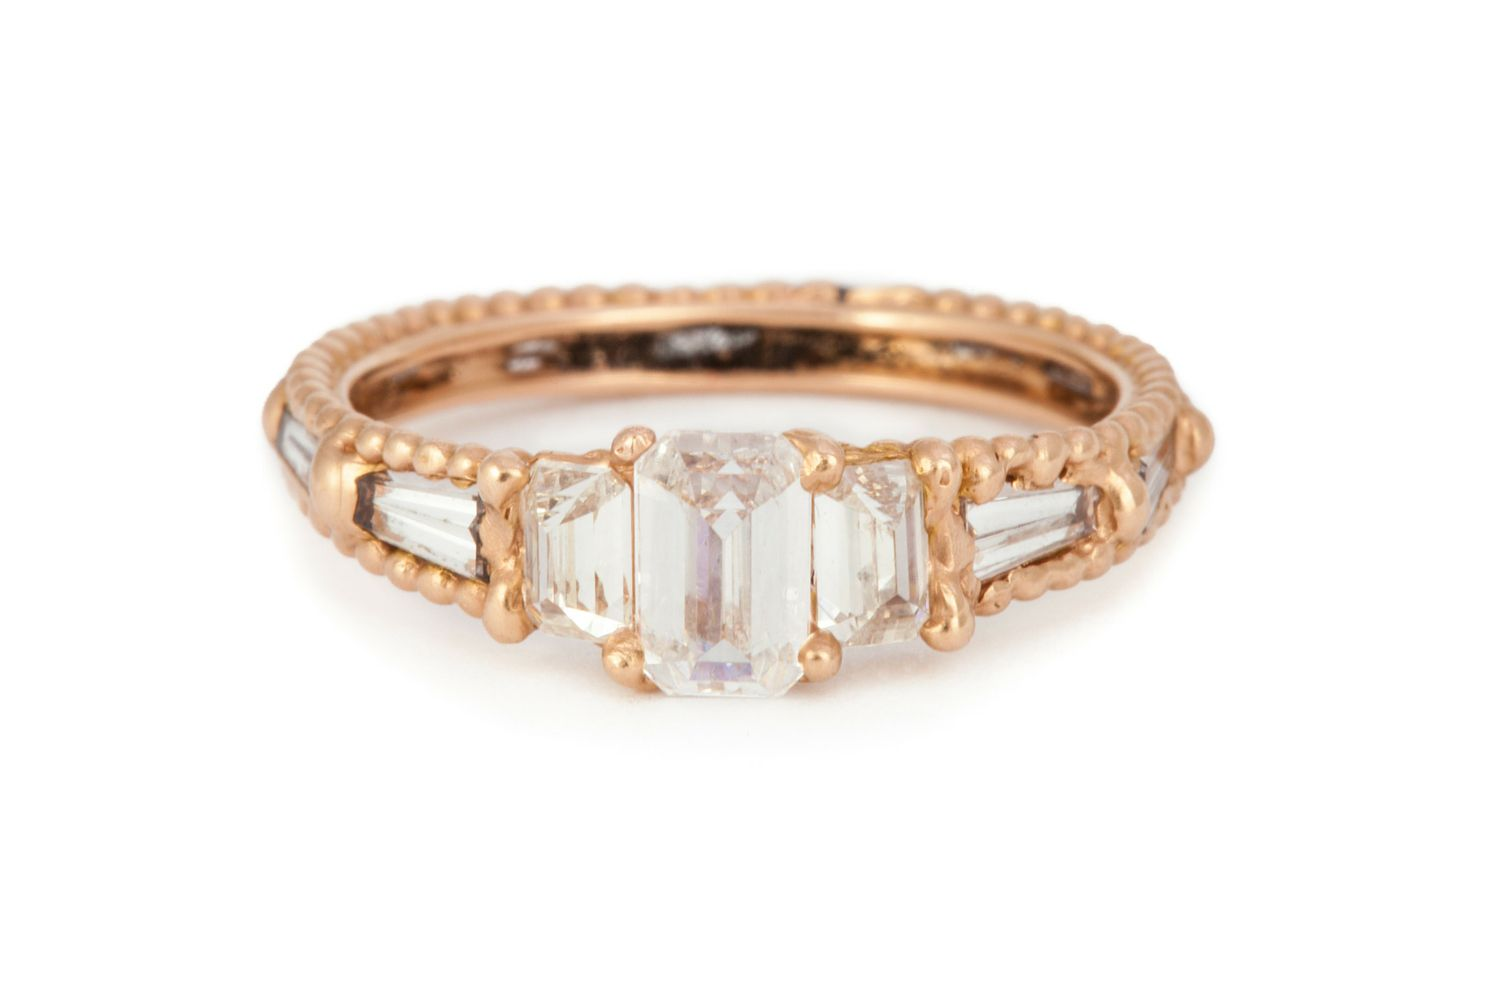 mark patterson set fs band judith eternity brilliant cut engagement gold rings with rose products bezel wedding diamond